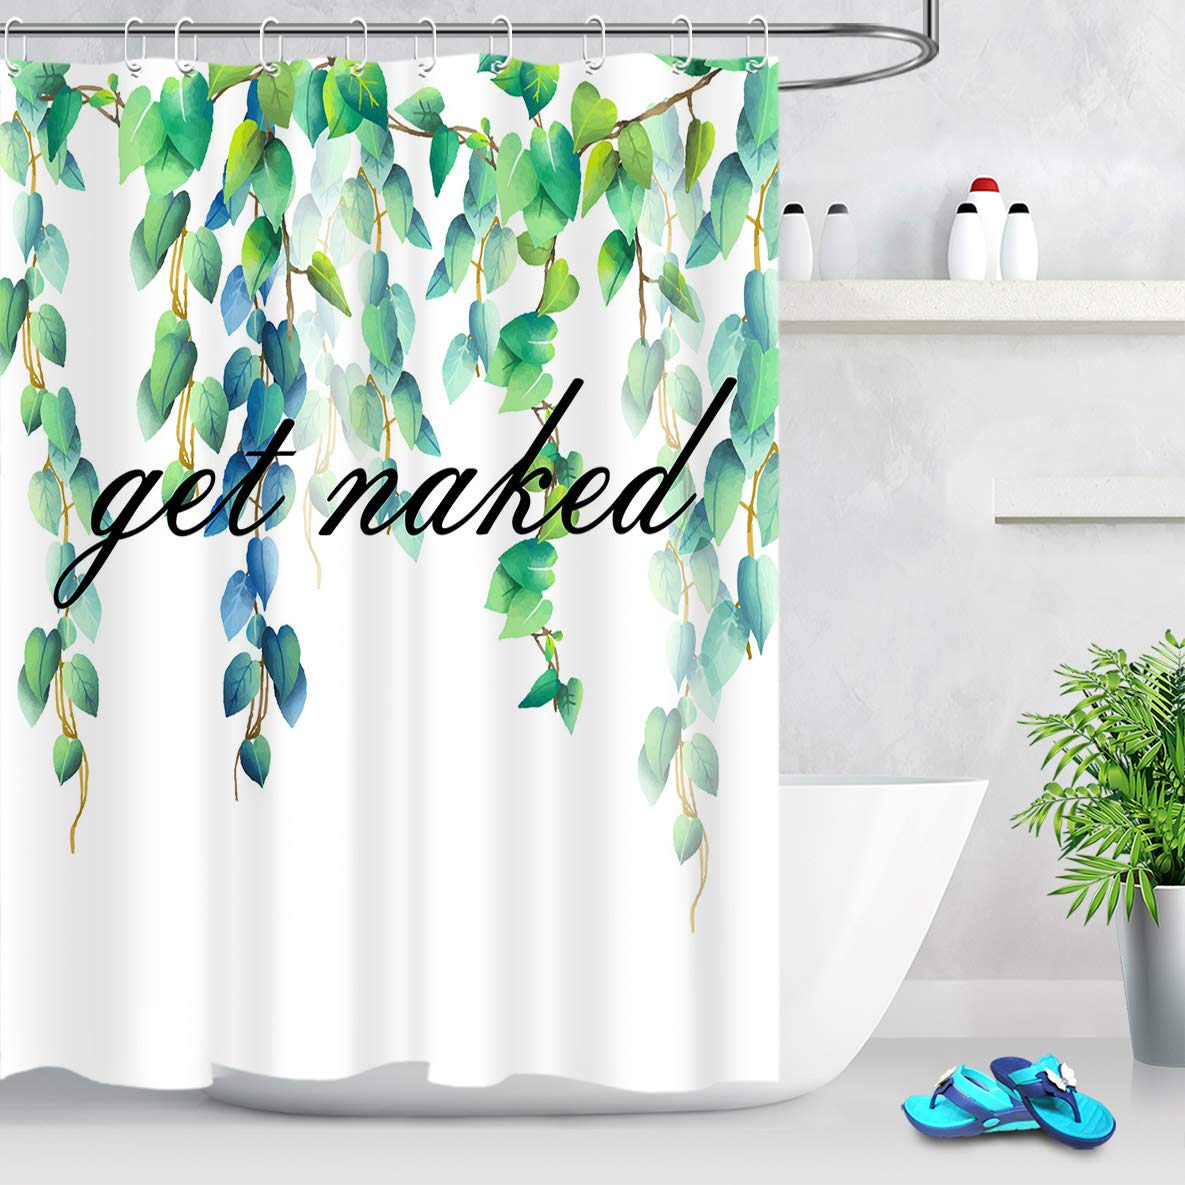 LB Watercolor Blue Green Leaves Shower Curtain with Creative Design Black Get Naked Shower Curtain White Background Funny Spring Bathroom Decor 60x72 Inch Waterproof Fabric with 10 Hooks